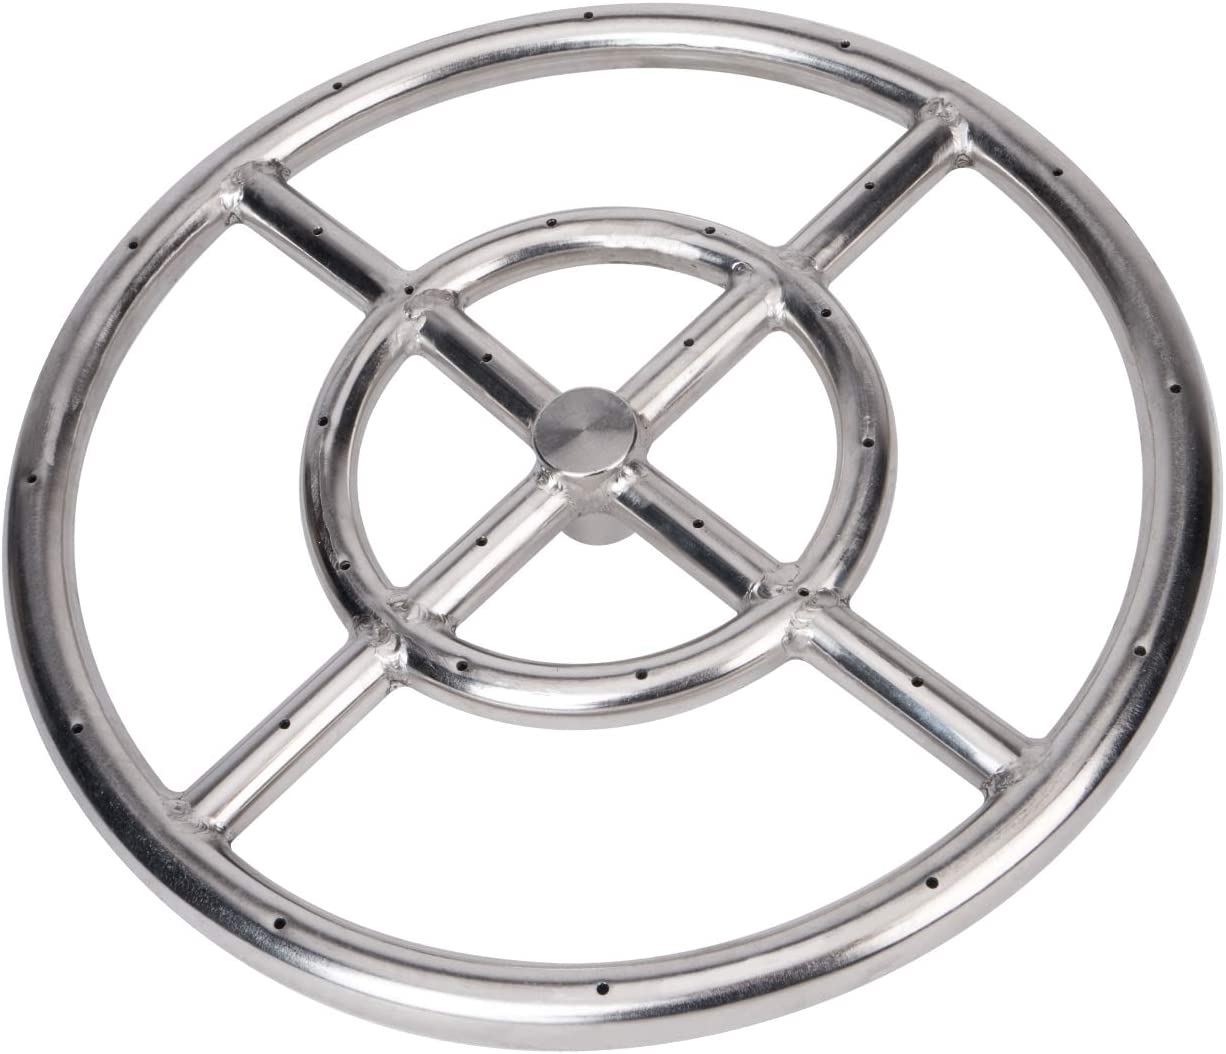 GASPRO 12 Inch Round Fire Pit Burner Ring, 304 Series Stainless Steel, Natural Gas or Propane Fire Pit, BTU 92,000 Max